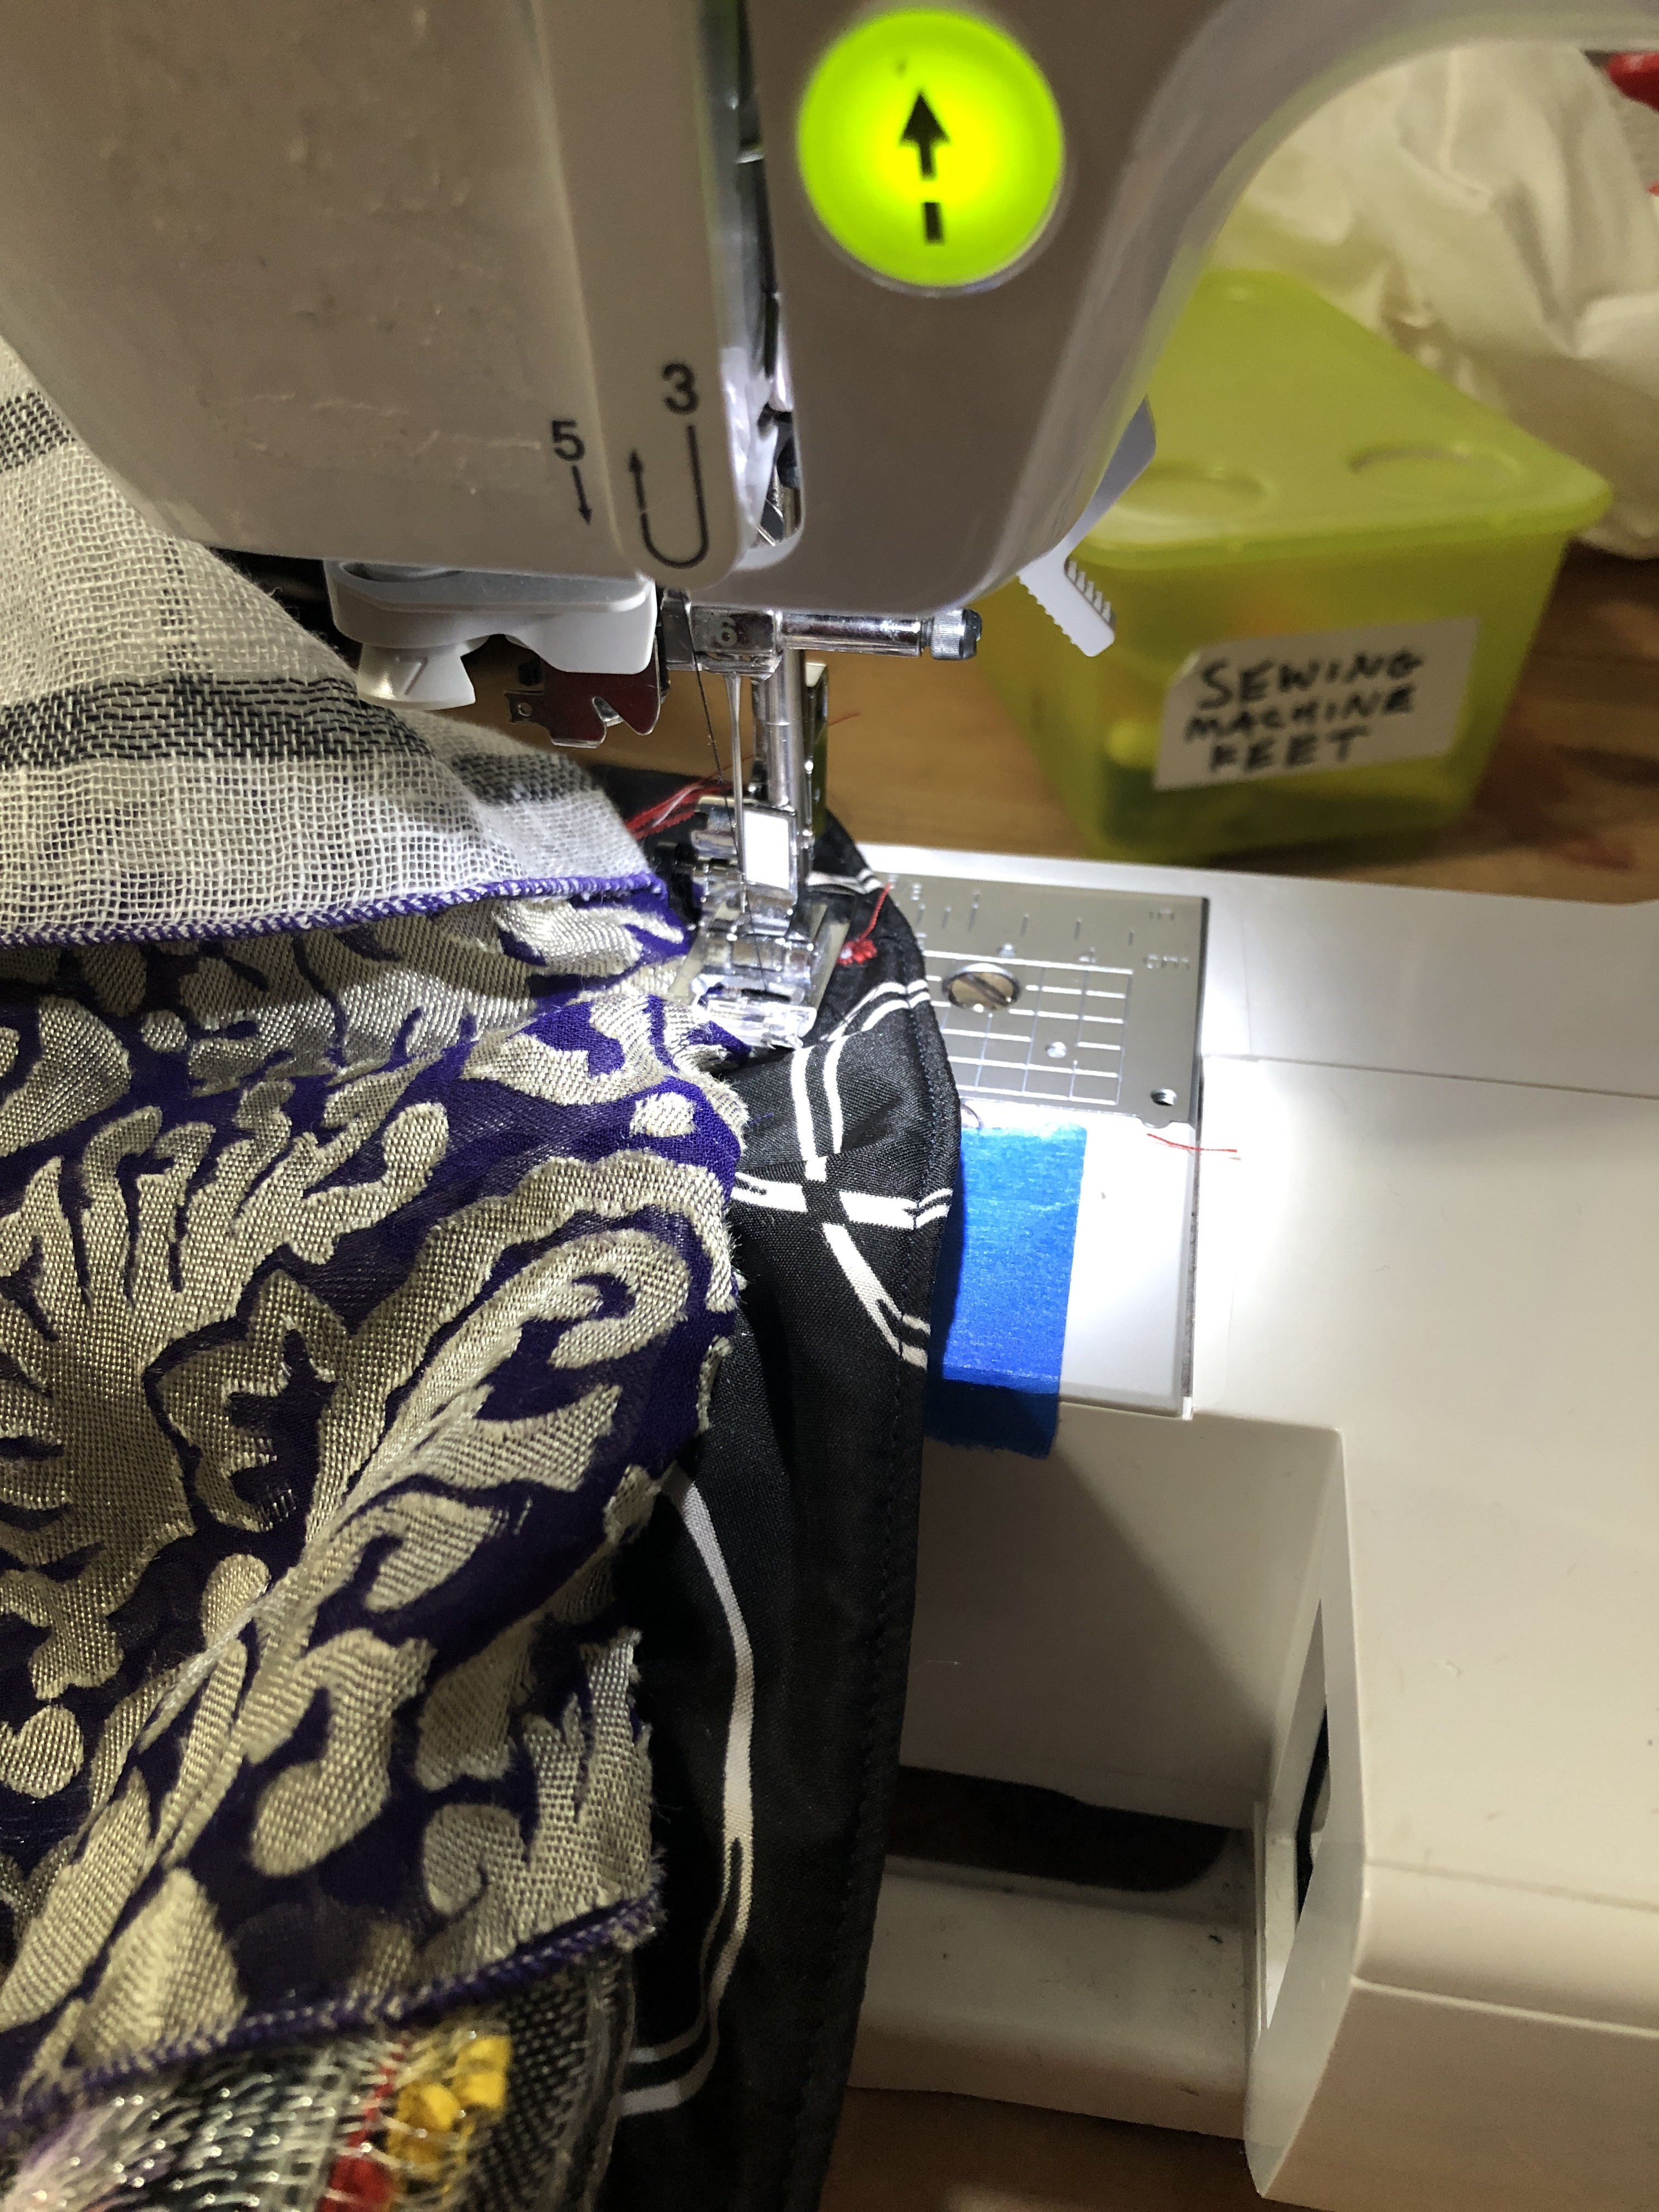 sewing machine close-up sewing purple and gold fabric